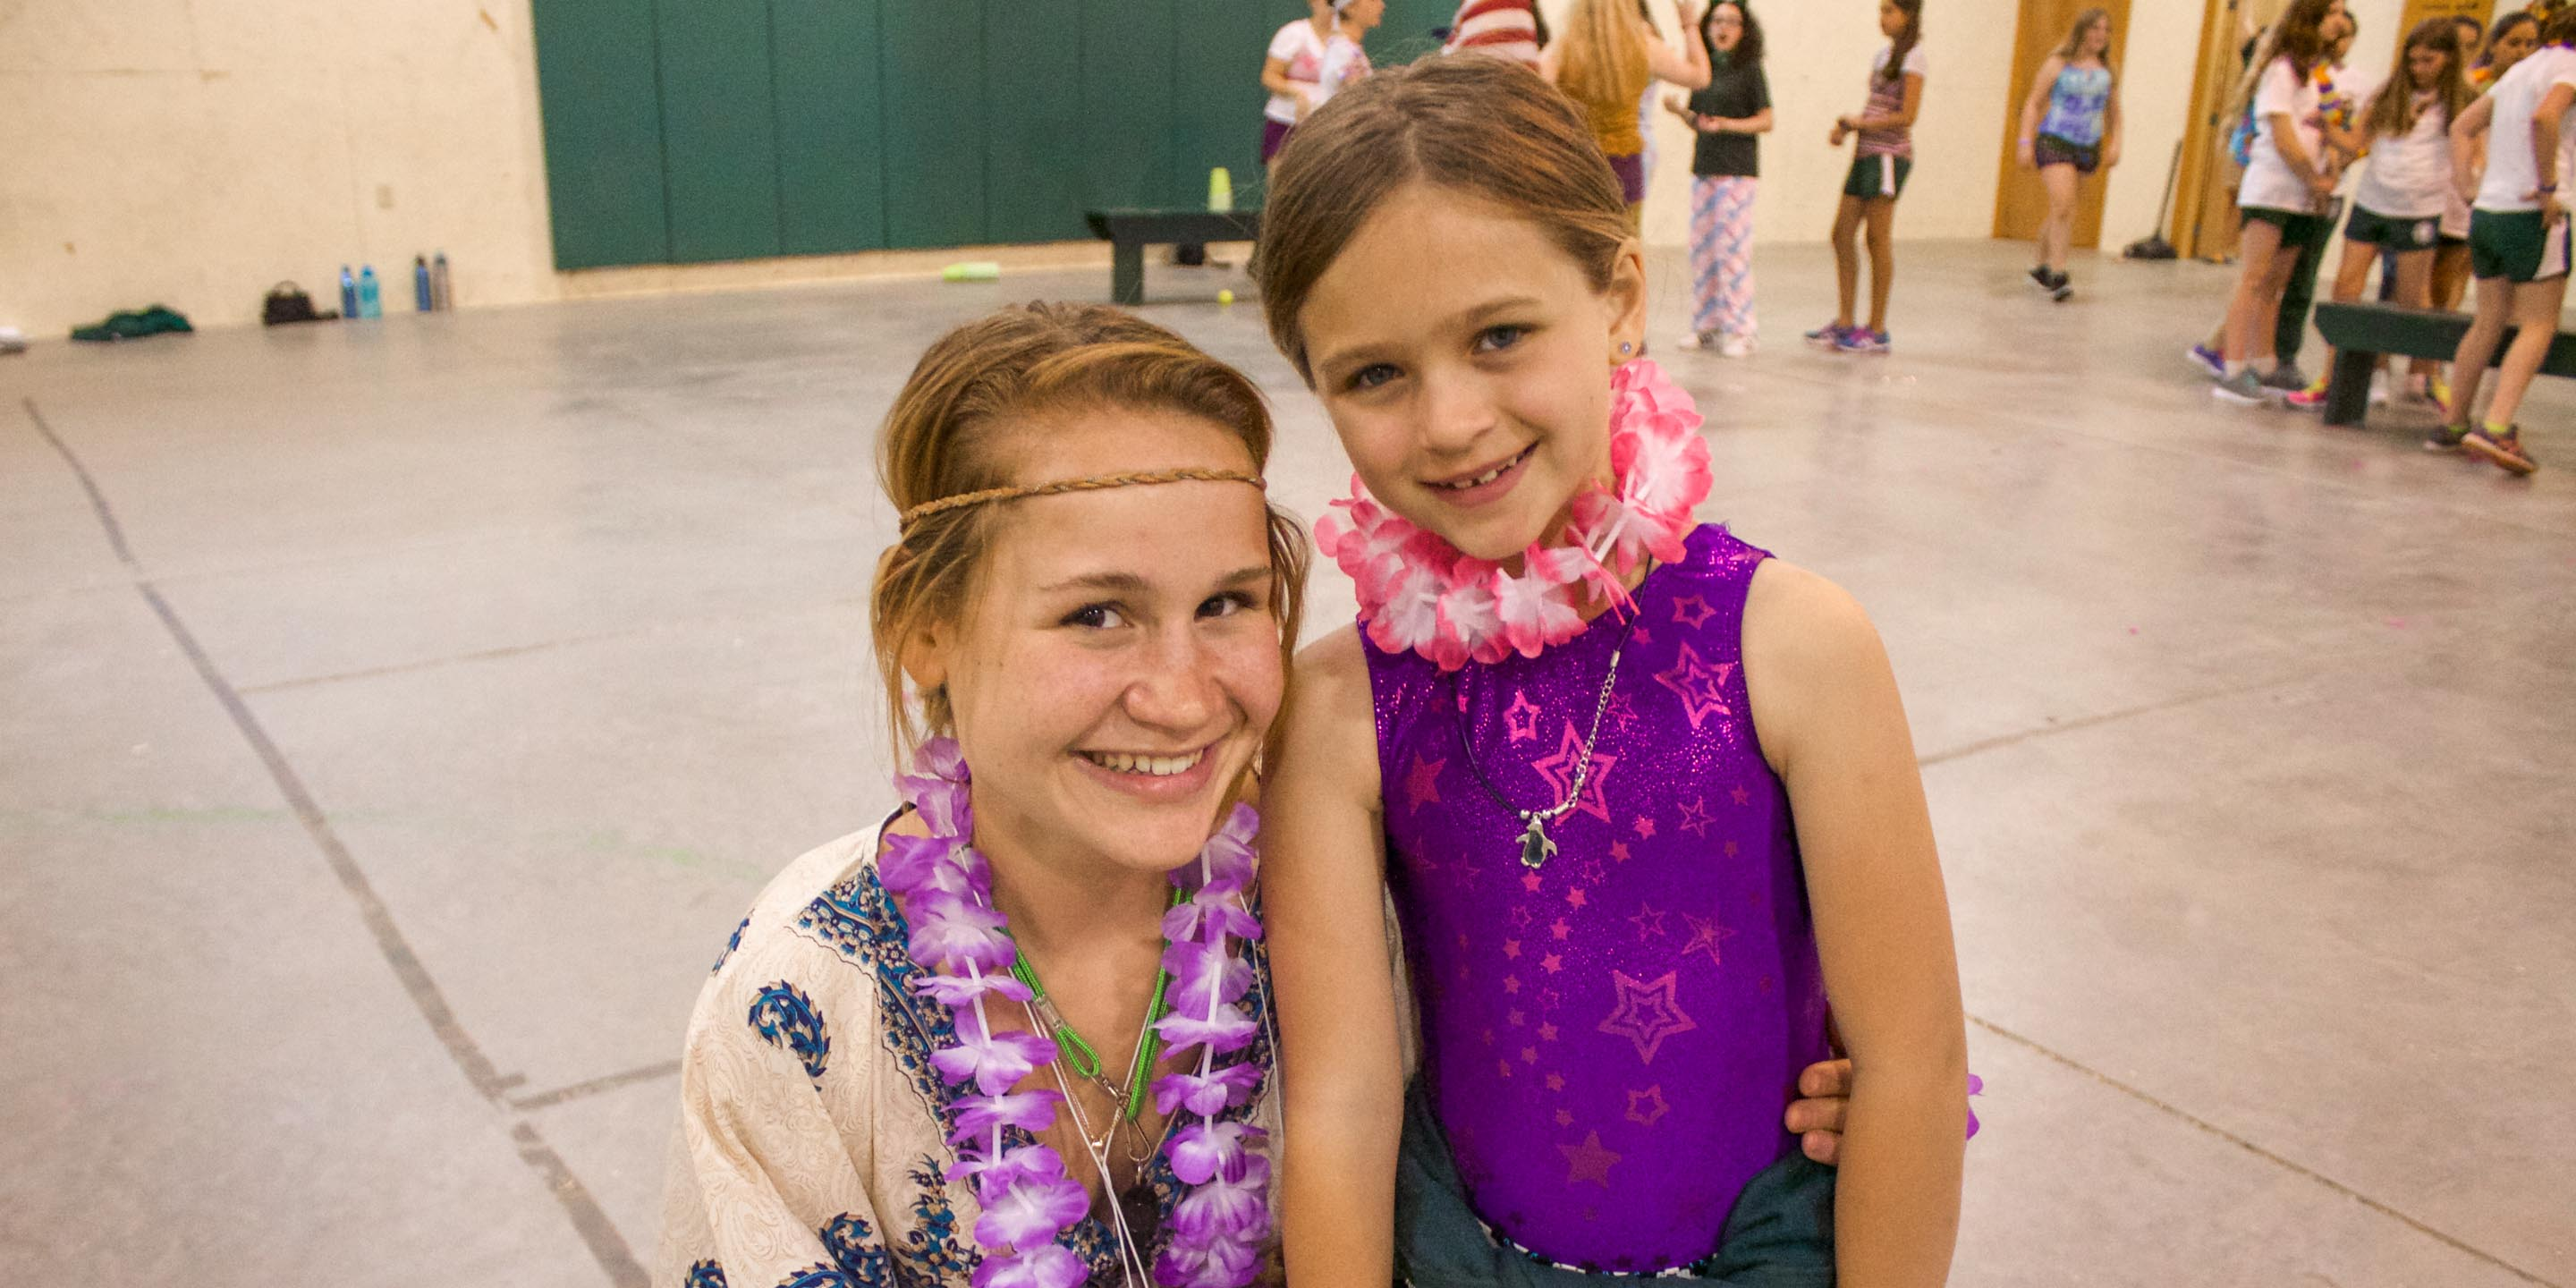 Staff with young camper dressed in Hawaiian leis